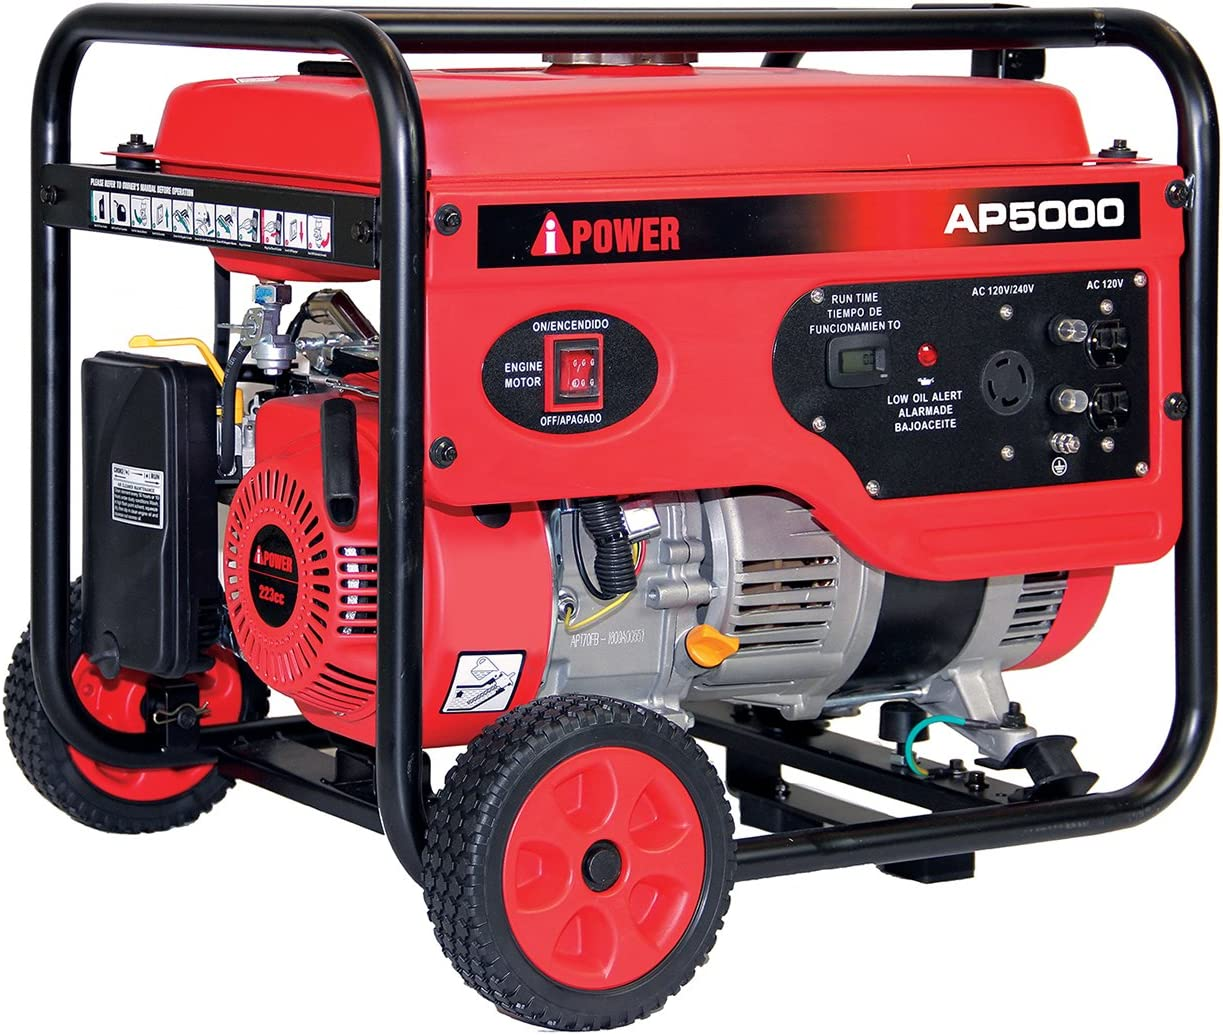 Best Home Generators For Power Outages 2020 (Top 10) 6